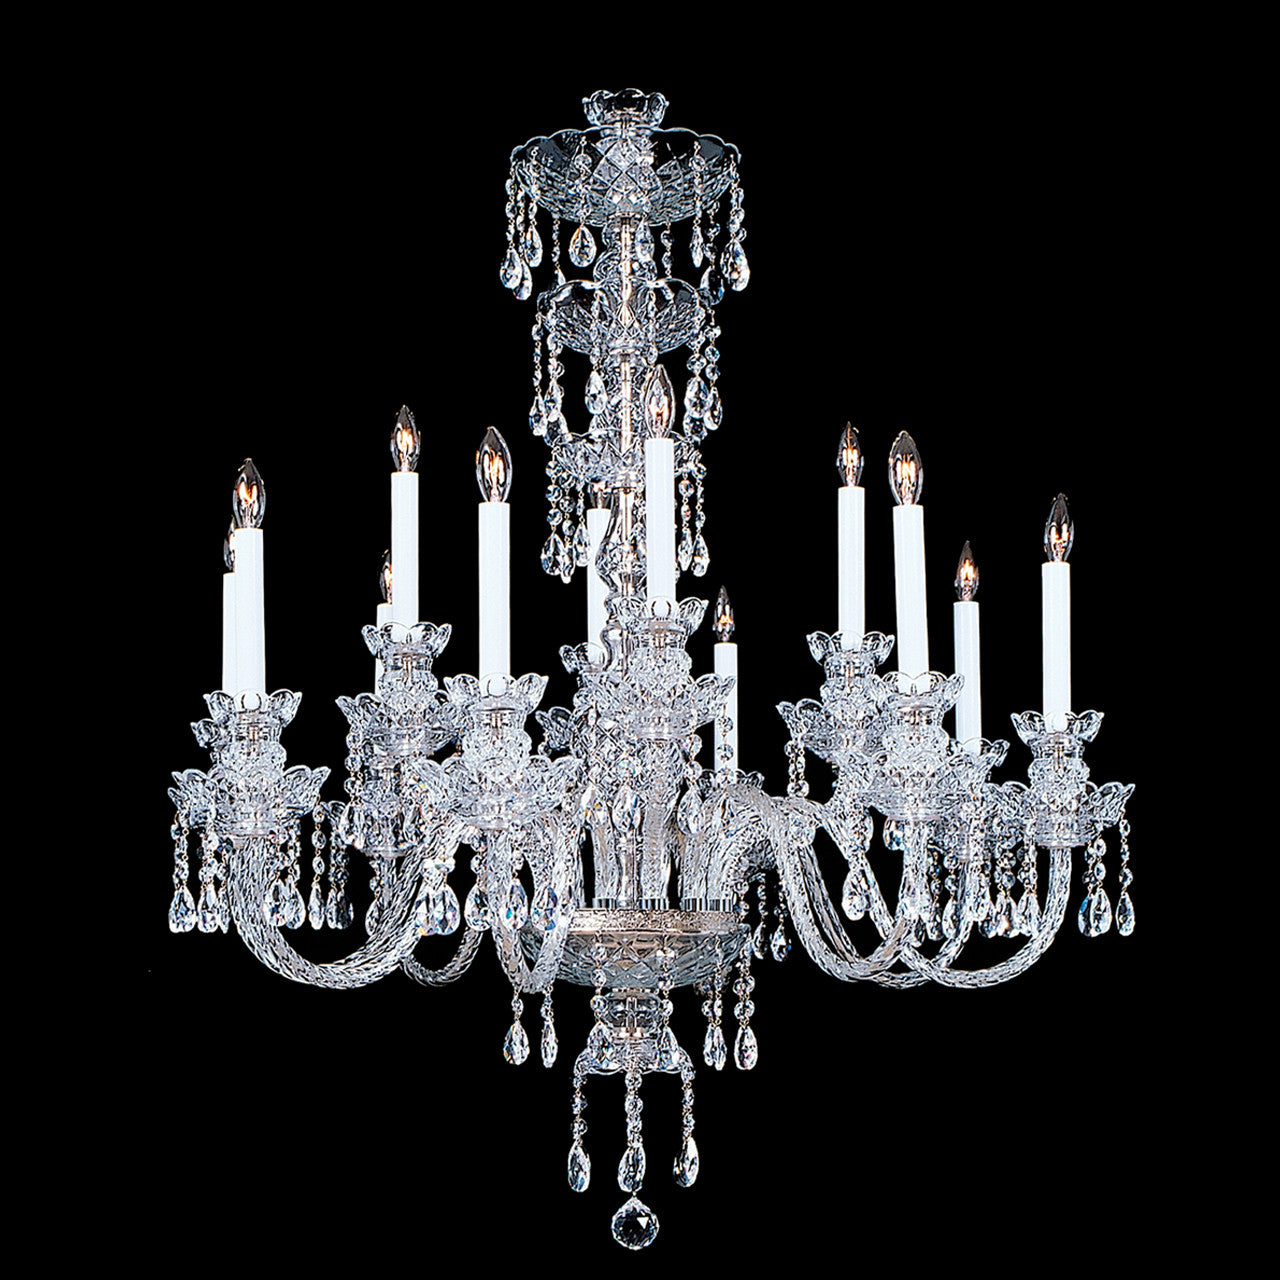 Elizabeth 12 light crystal chandelier with swarovski 32 x 42 elizabeth crystal chandelier shown in nickel finish note the clear wire in the arms aloadofball Gallery